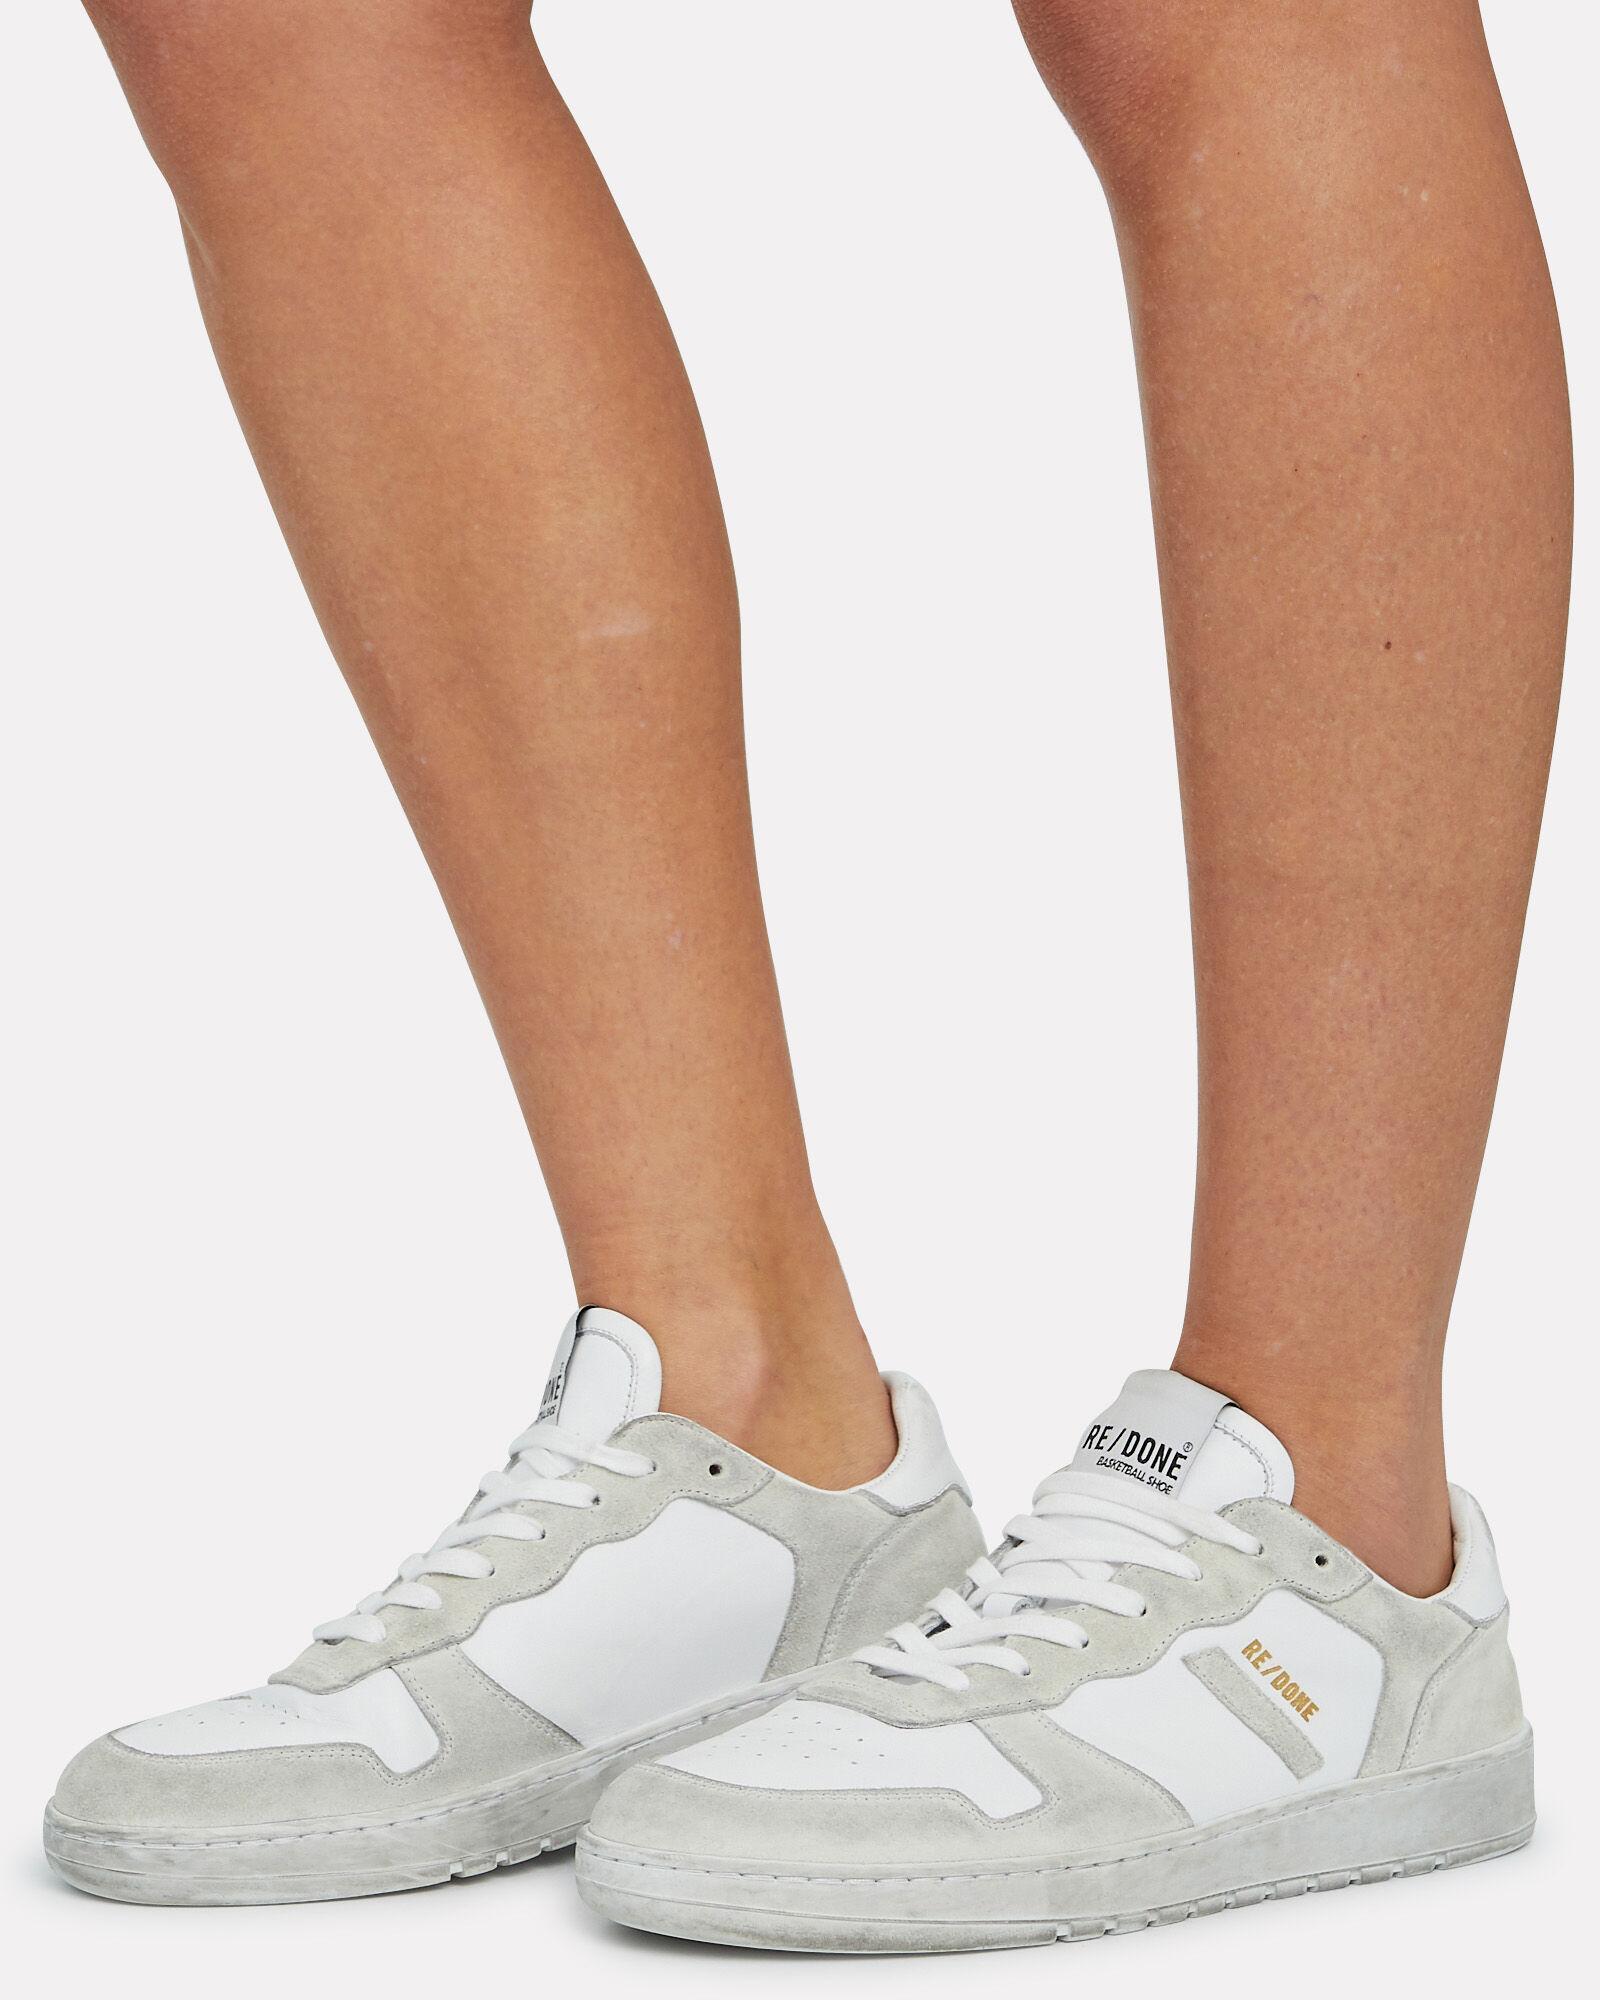 80's Low-Top Basketball Sneakers, WHITE, hi-res